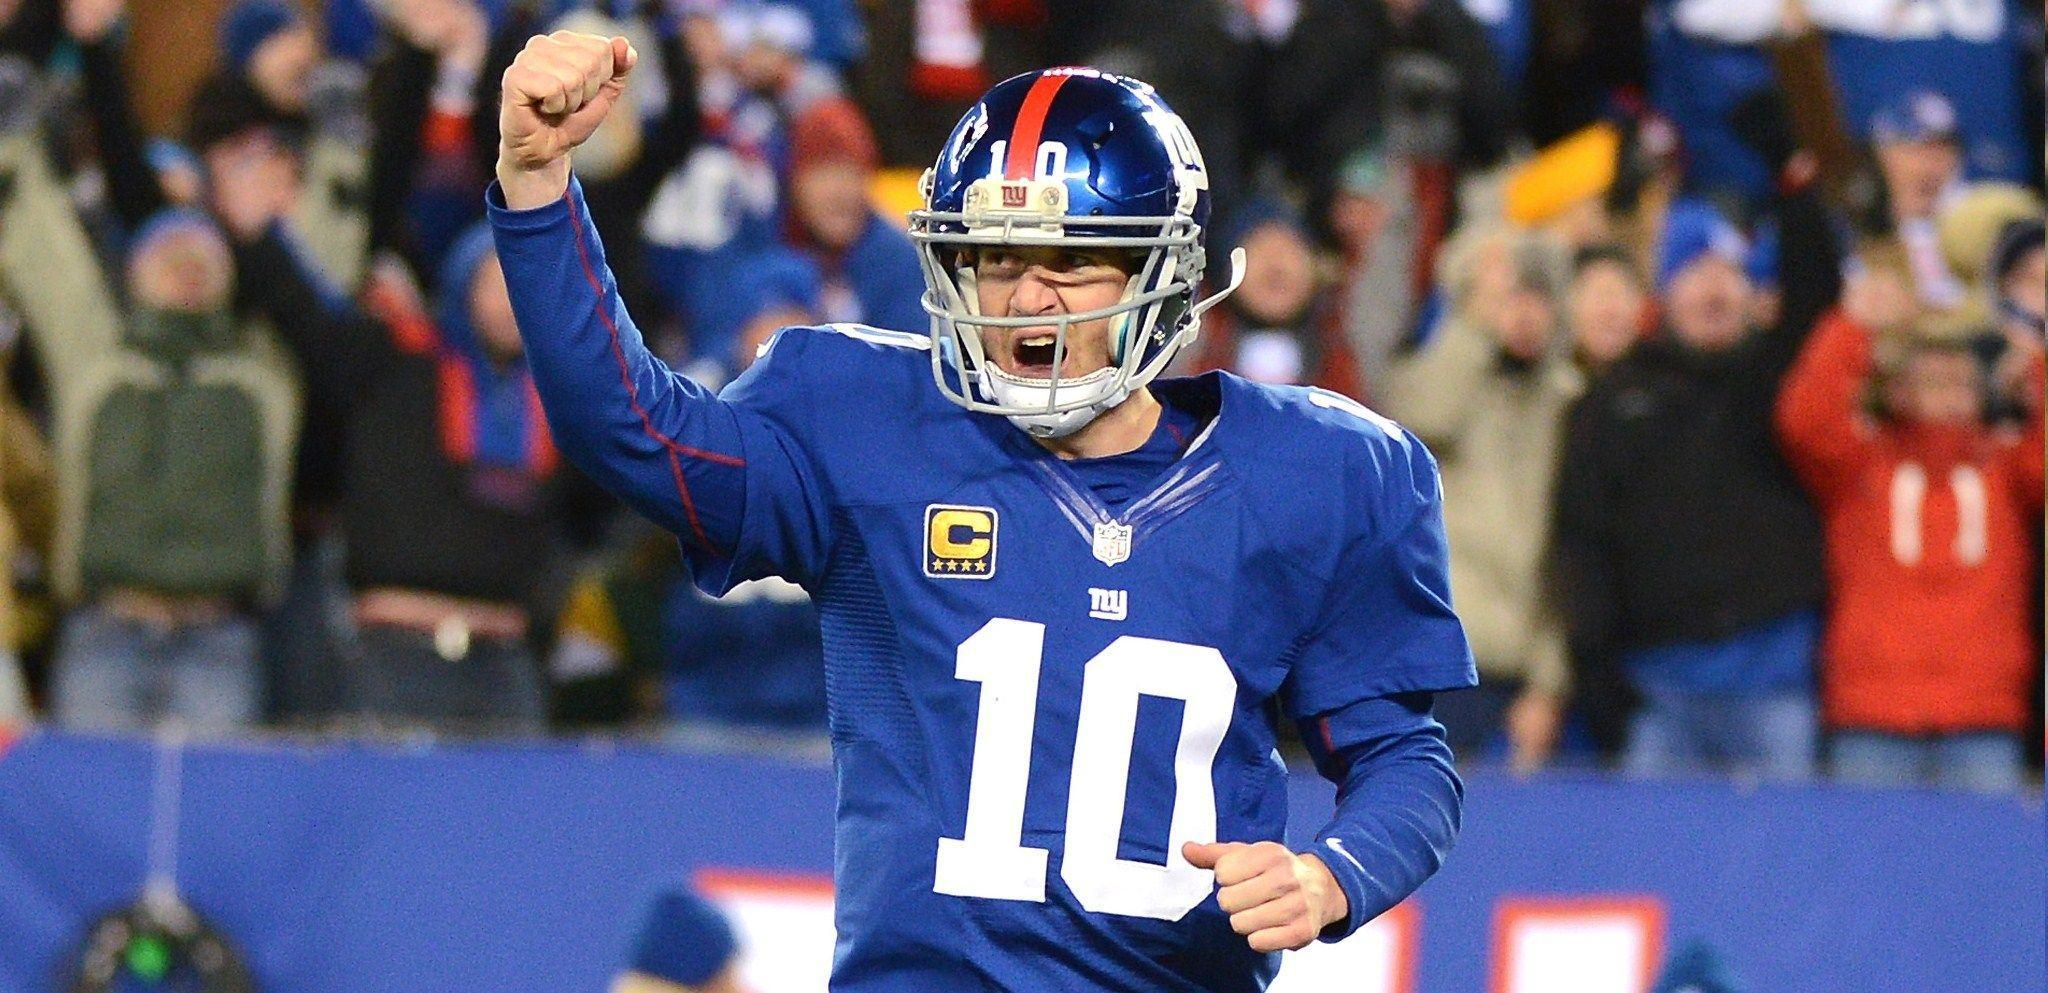 Eli Manning Wallpapers HD - Page 2 of 3 - wallpaper.wiki